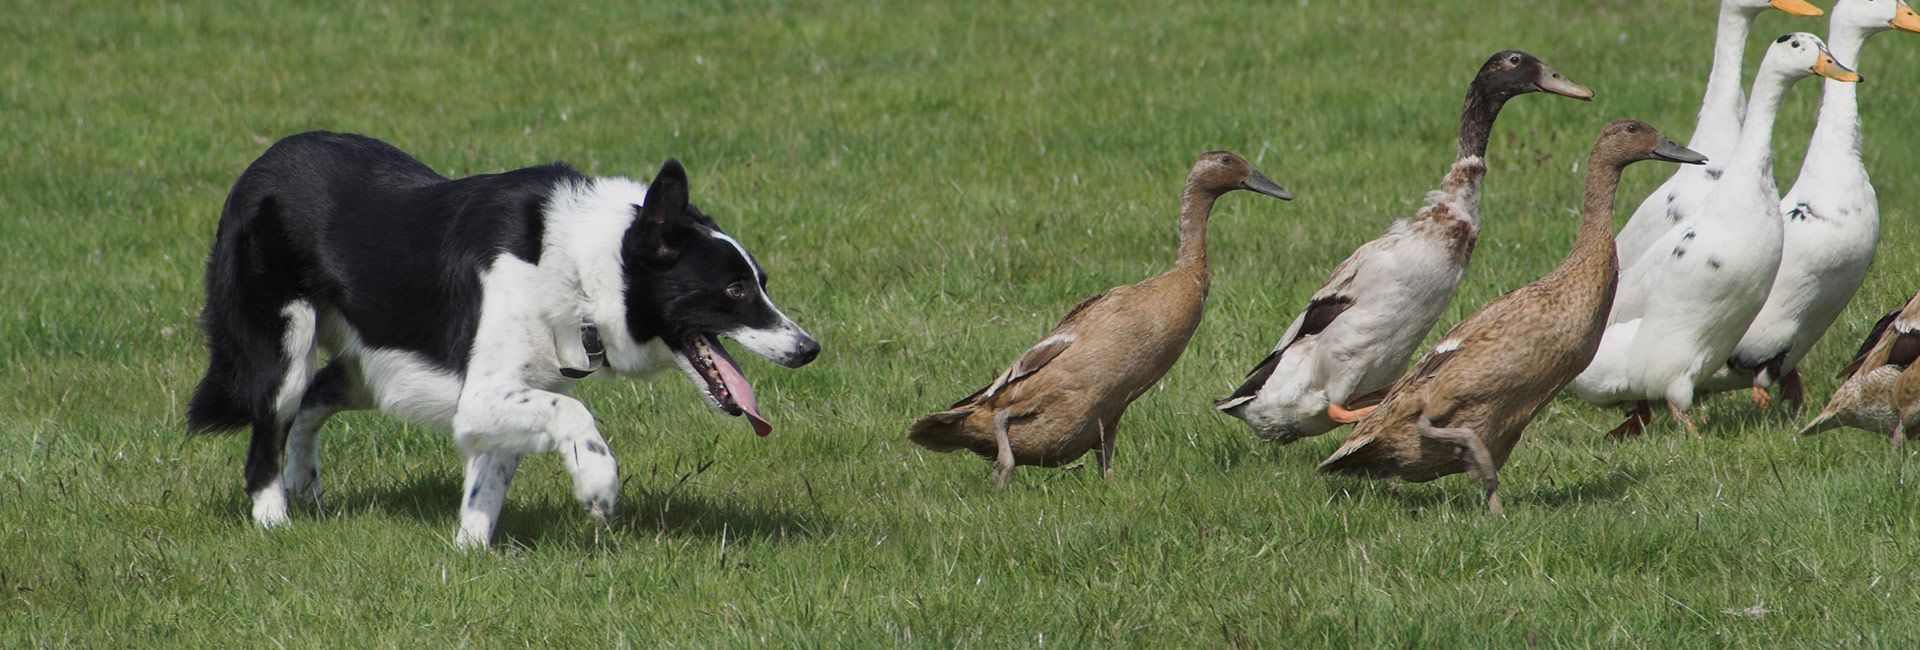 sheep dog handling